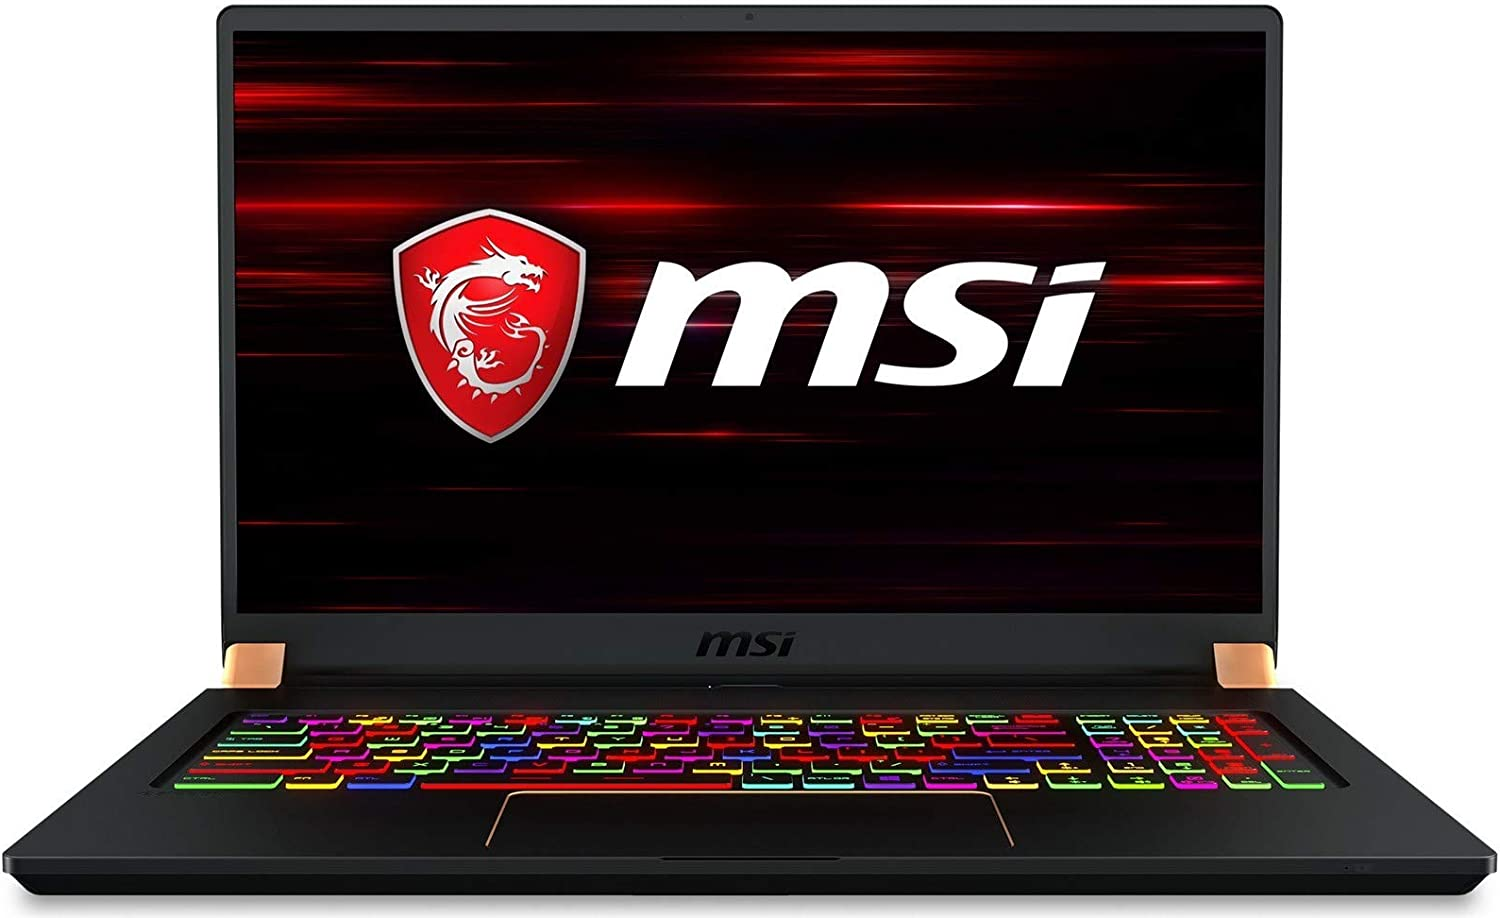 "MSI GS75 Stealth-1025 17.3"" 144Hz 3ms Ultra Thin and Light Gaming Laptop Intel Core i7-8750H RTX2070 16GB DDR4 512GB Nvme SSD TB3 Win10Home VR Ready"